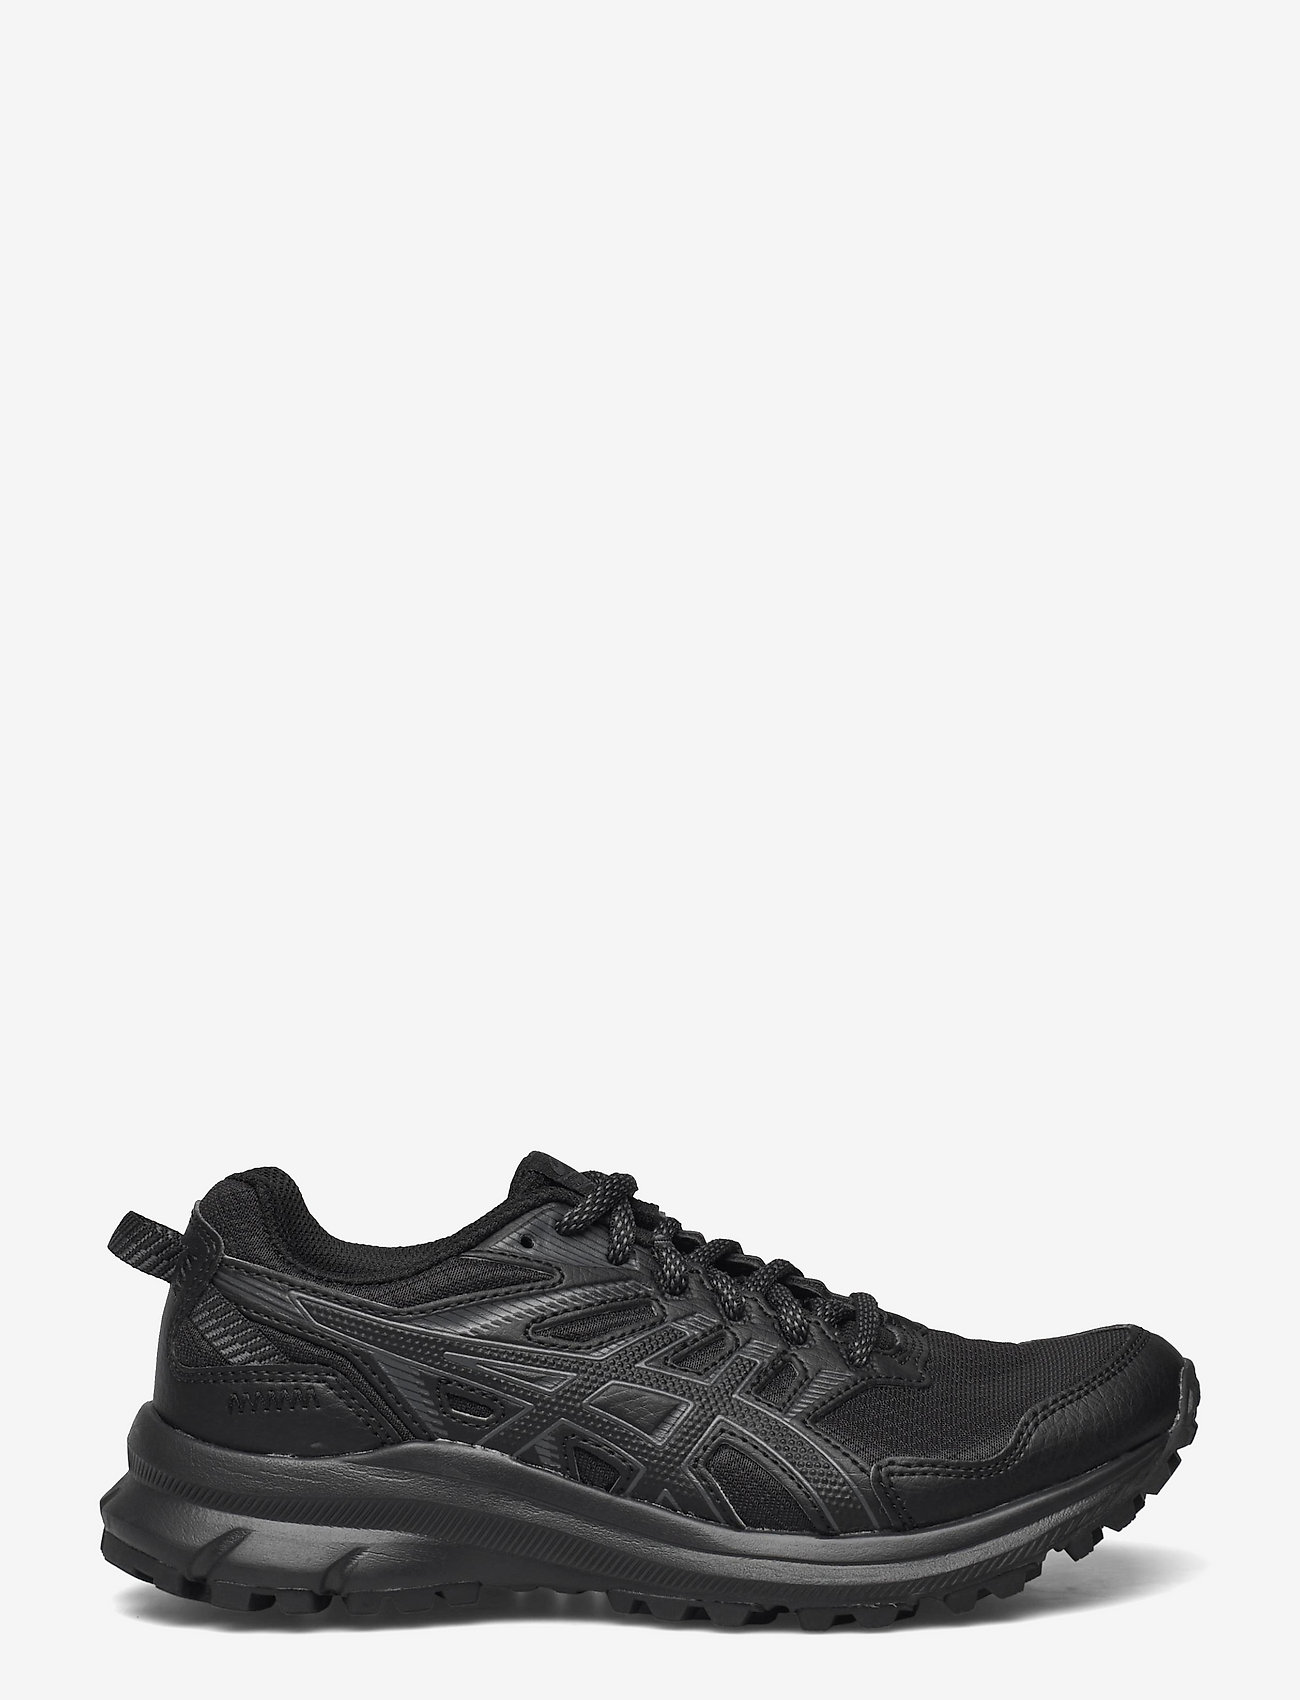 Asics - TRAIL SCOUT 2 - running shoes - black/carrier grey - 1